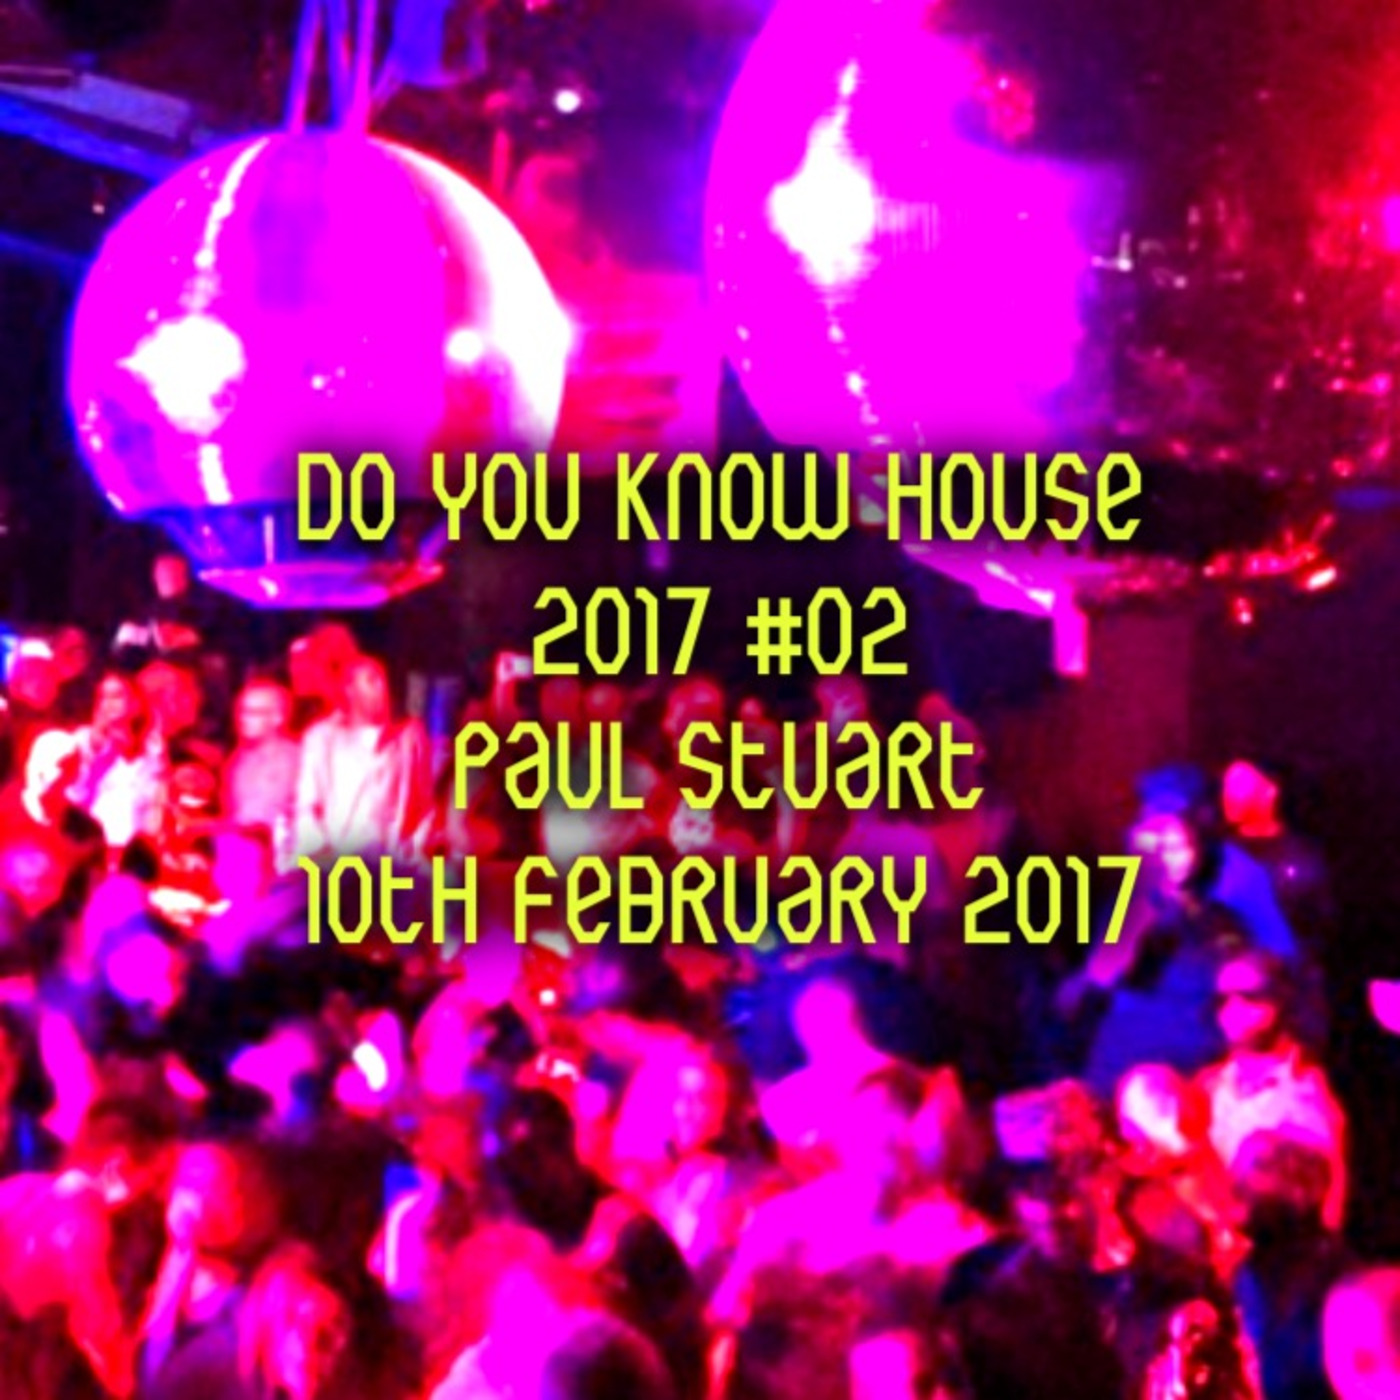 do you know house 2017 #02 - paul stuart mixes and podcasts (podcast)